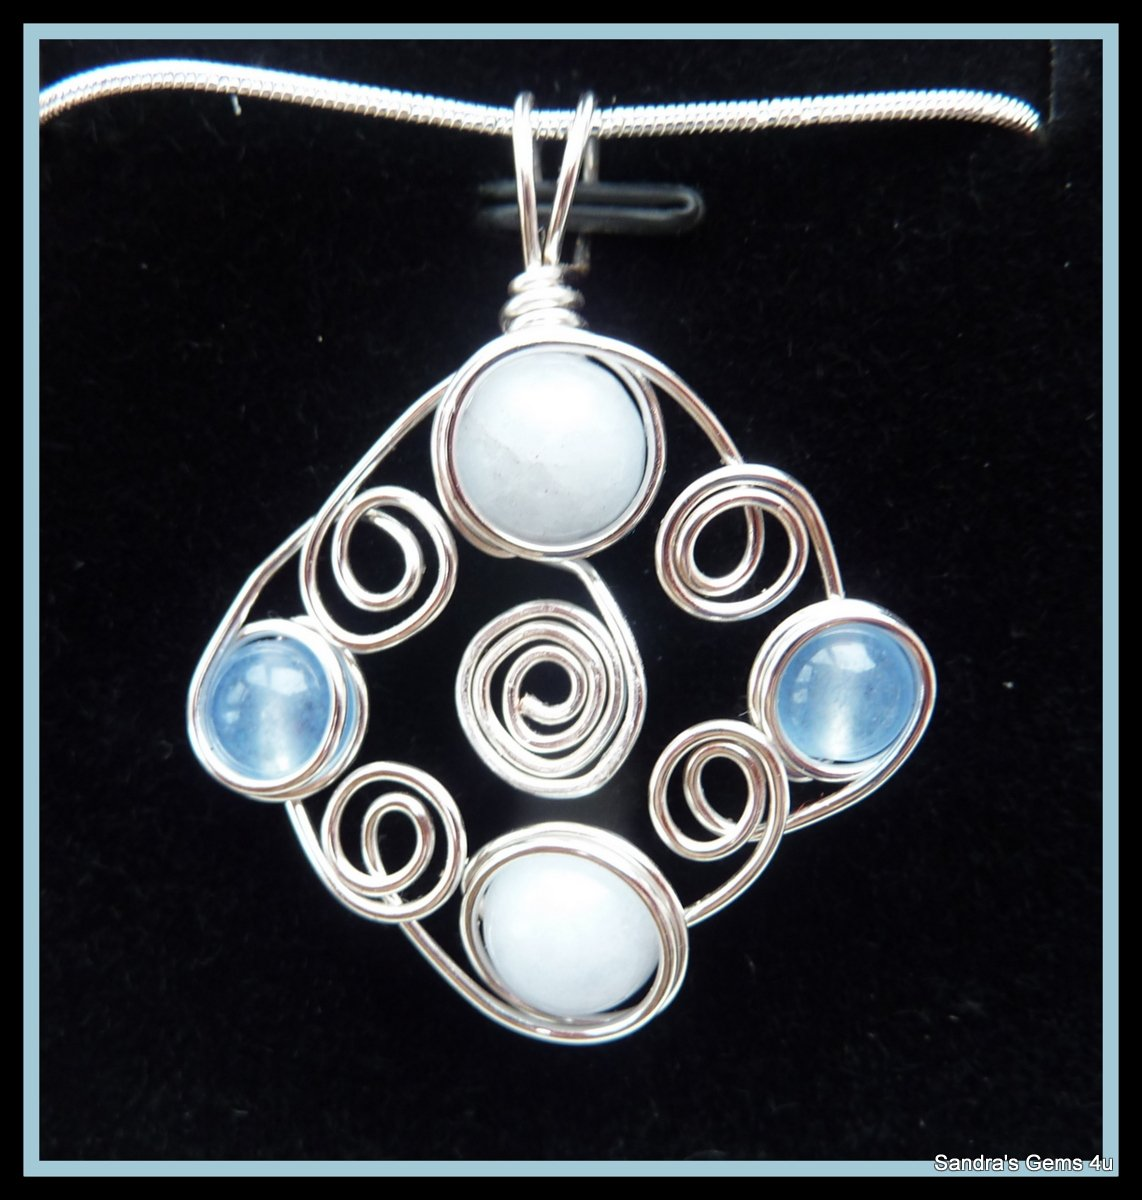 Aquamarine Pendant, wire wrapped in Silver, March birthstone, with chian